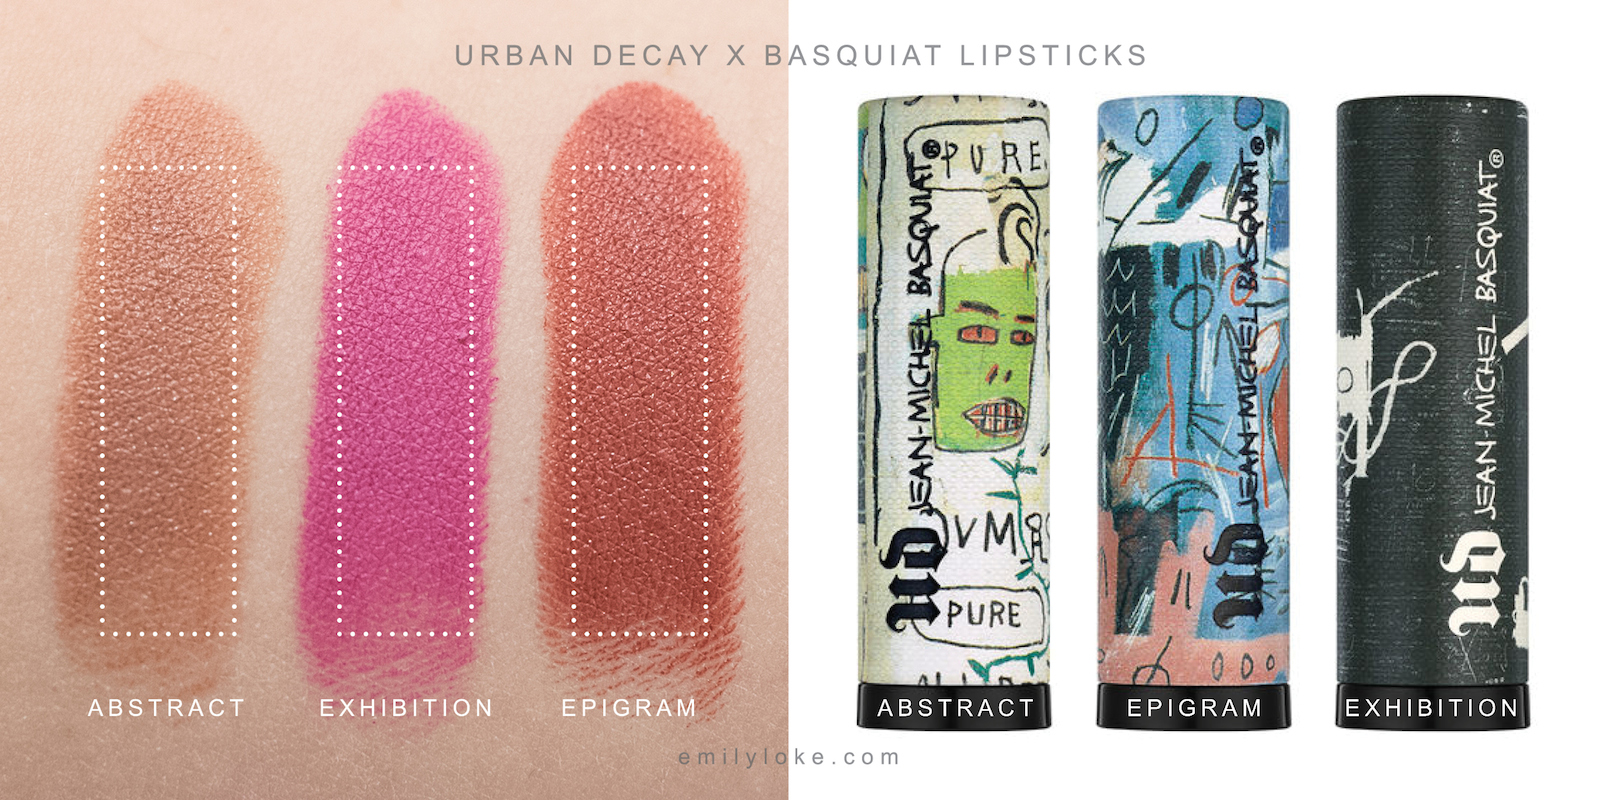 urban decay basquiat lipstick swatches